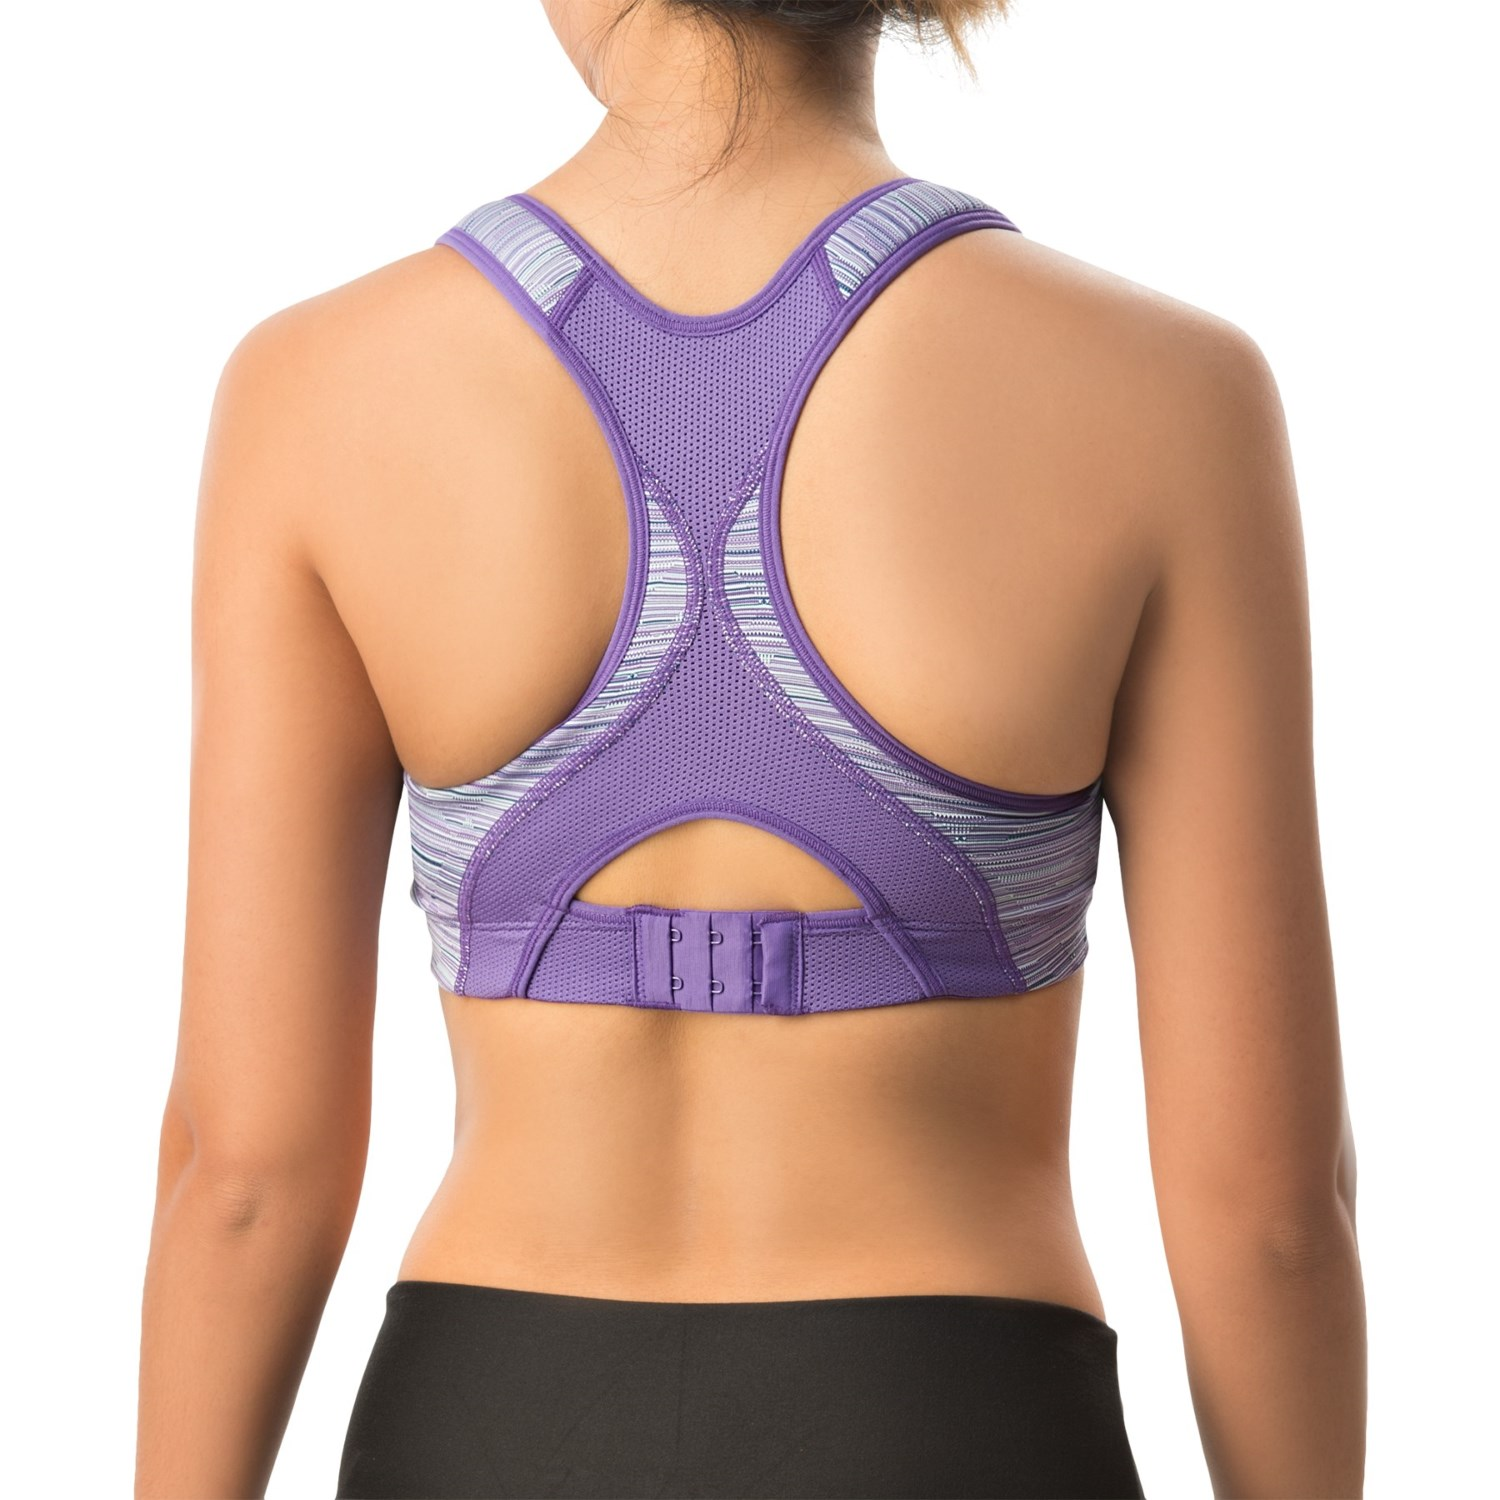 Underwire Bras Underwire Sports Bras, High Impact Sports Bras, Underwire Athletic Bras, Best Underwire Bras Let's face it, underwire sports bras are not the most comfortable invention, until Title 9. Our underwire sports bras not only offer plenty of support, these high impact sports bras also do it without any prodding and poking.